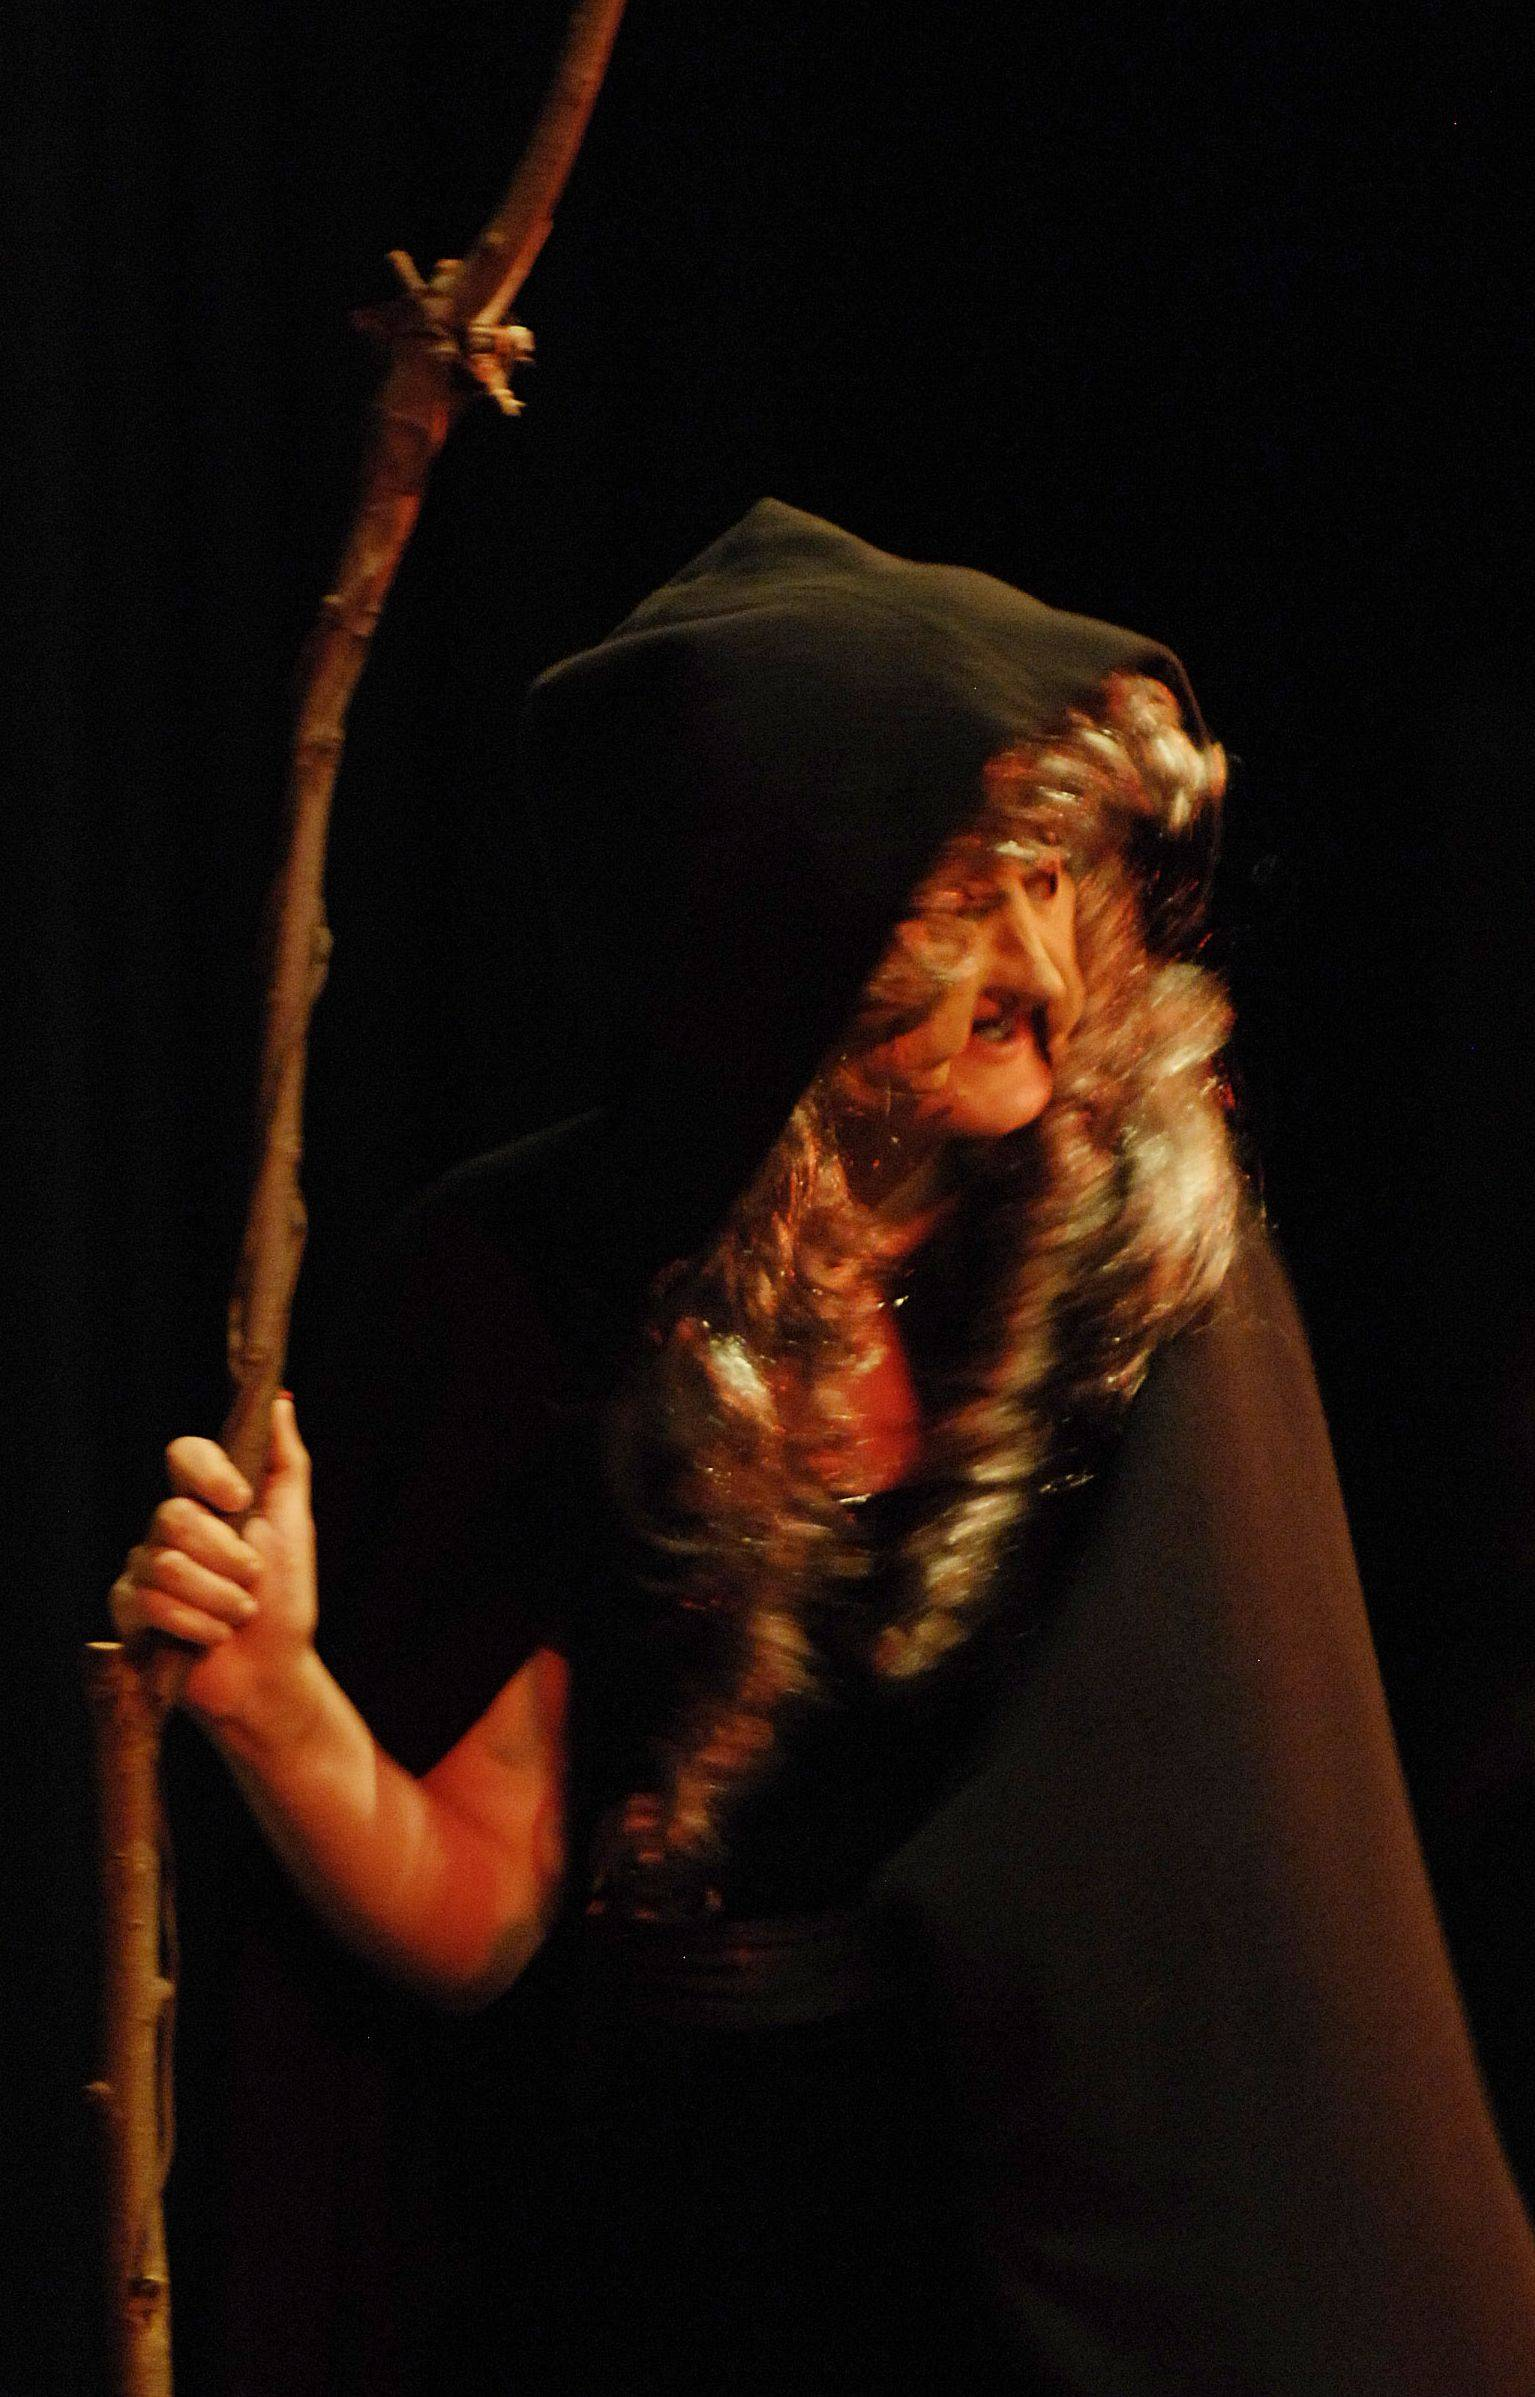 "Allison Wellnitz, above, plays the part of the witch in ""Into the Woods, Junior,"" which will open Friday at Jacobs High School in Algonquin. Wellnitz is a Jacobs High School student. Below, Danielle Klein, playing the part of Little Red, runs through the woods and out of reach of the baker and his wife, played by Michael Wade and Alissa Teade, during the District 300 Foundation rehearsal of ""Into the Woods, Junior."" Klein is a student at Westfield Community School and Wade and Teade are Jacobs students."